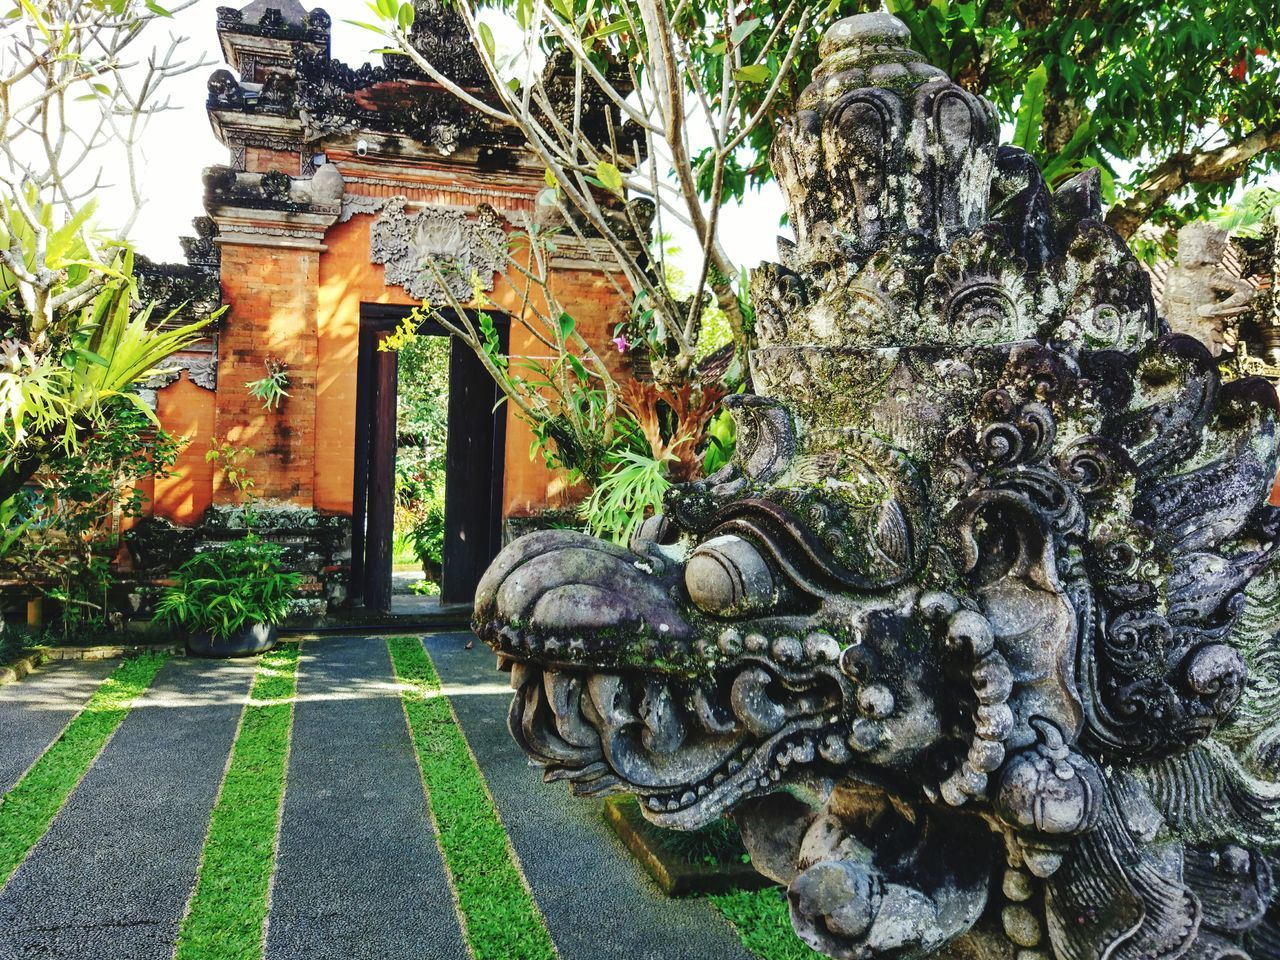 Built Structure Art And Craft Statue Sculpture Day No People Architecture Religion Outdoors Tree Building Exterior Religious Art INDONESIA Bali Tradition Purisaraswati Naga